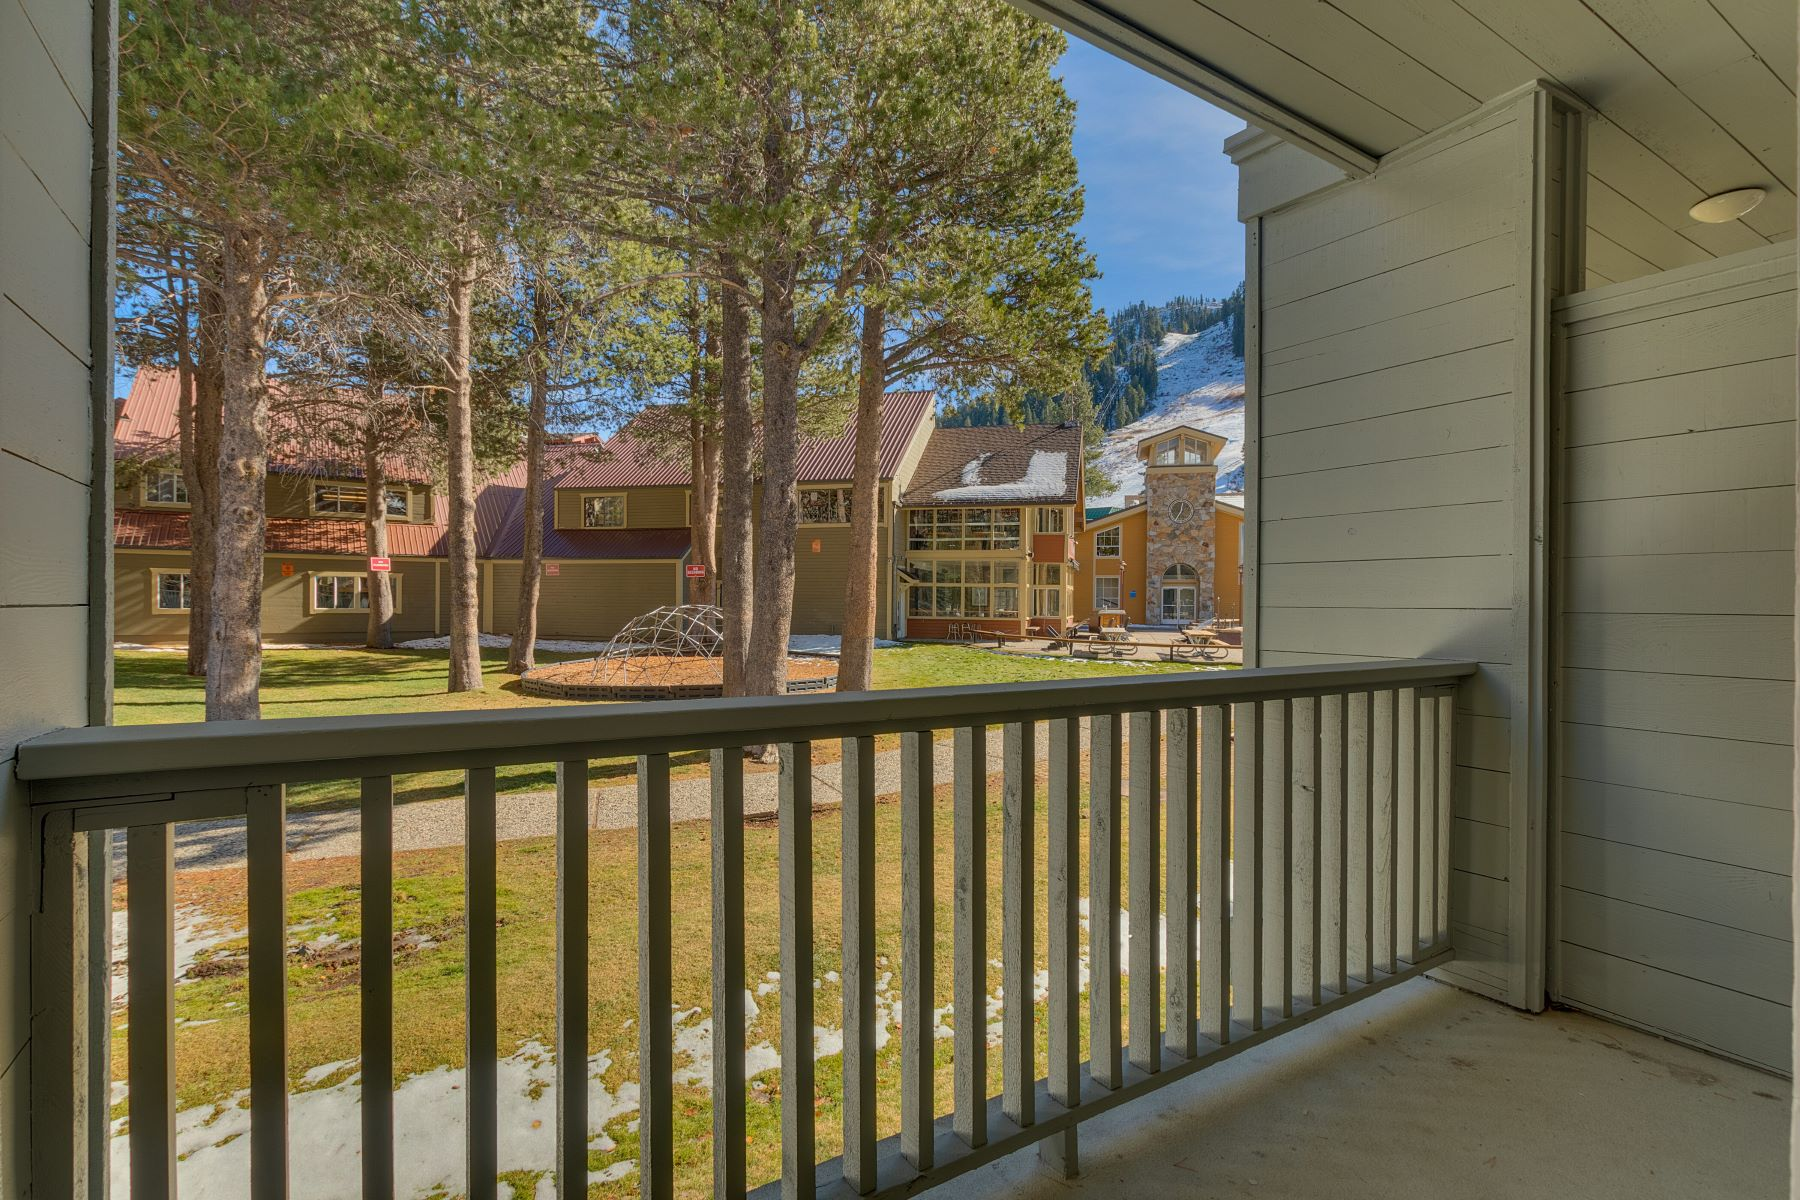 Additional photo for property listing at Squaw Valley Lodge 201 Squaw Peak Road # 718 & 719 Olympic Valley, California 96146 United States